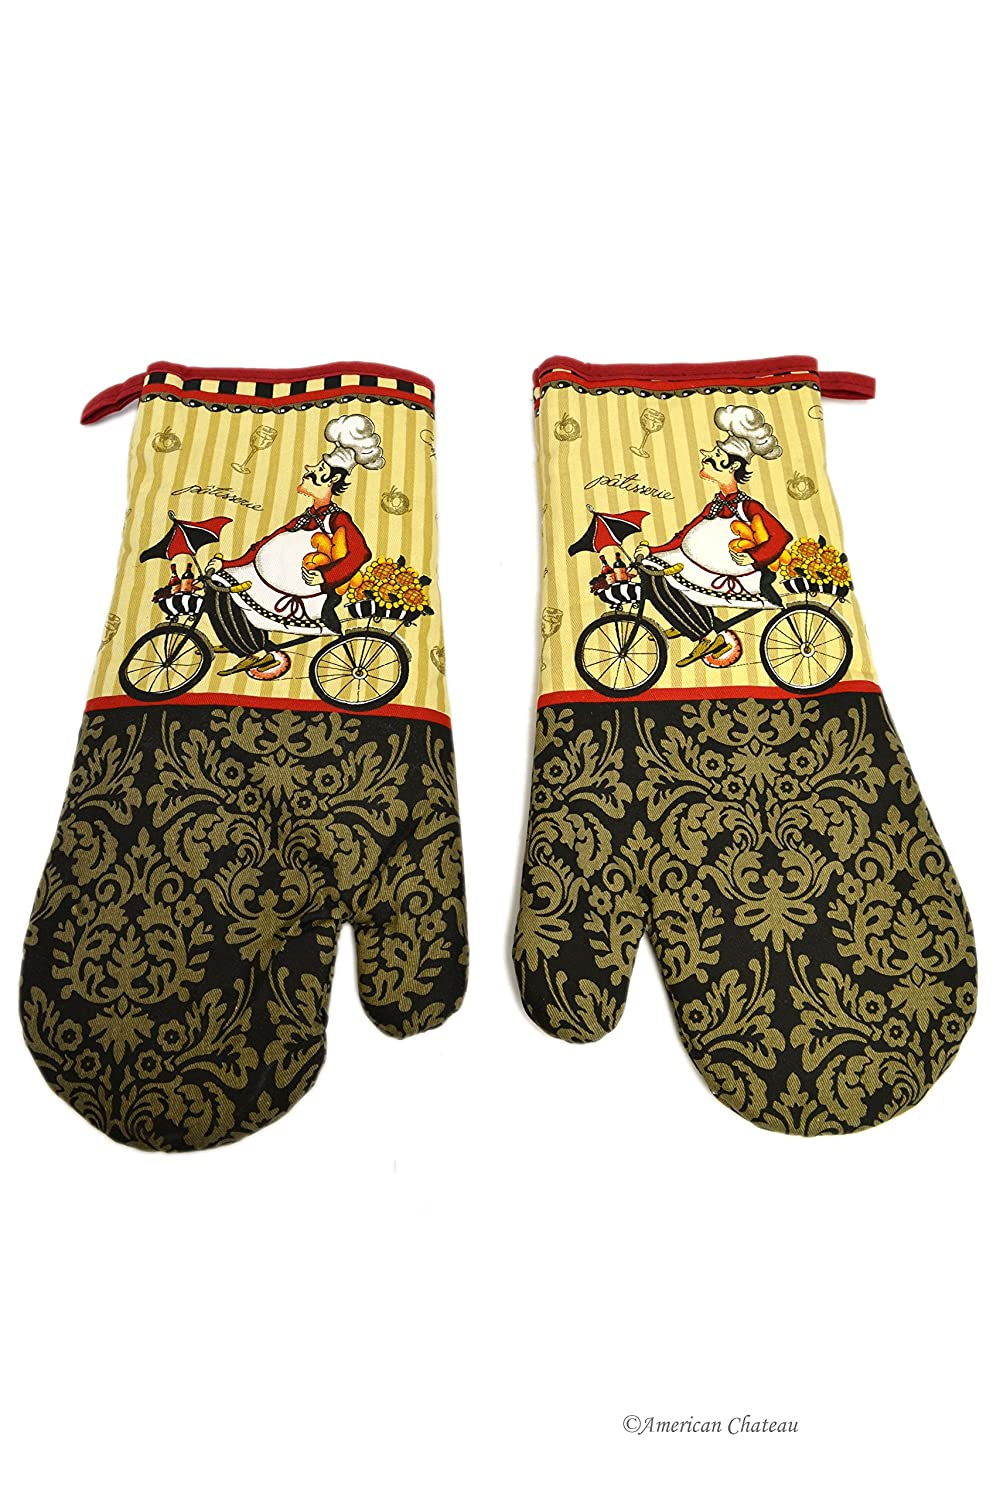 2 Piece Fat French Chef On Bicycle Bbq Kitchen Gloves Oven Mitts Bistro Decor American Chateau